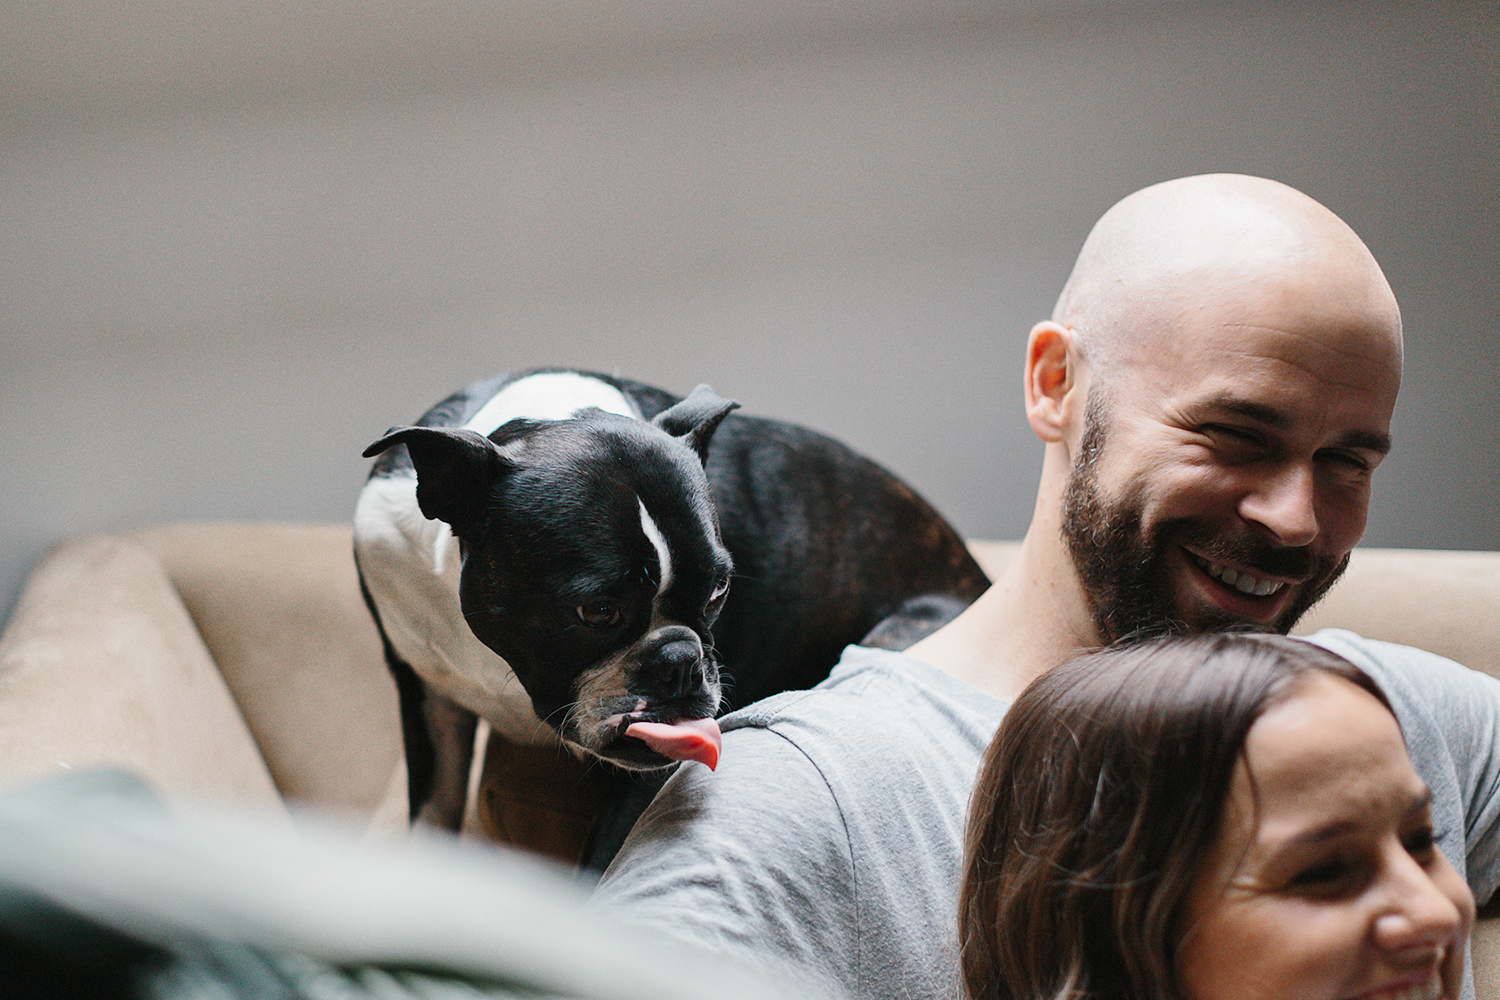 downtown-toronto-in-home-engagement-session-toronto-wedding-photographer-ryanne-hollies-photography-documentary-candid-natural-photos-engaged-in-toronto-couple-cuddling-with-puppy-cute-french-bulldog.jpg